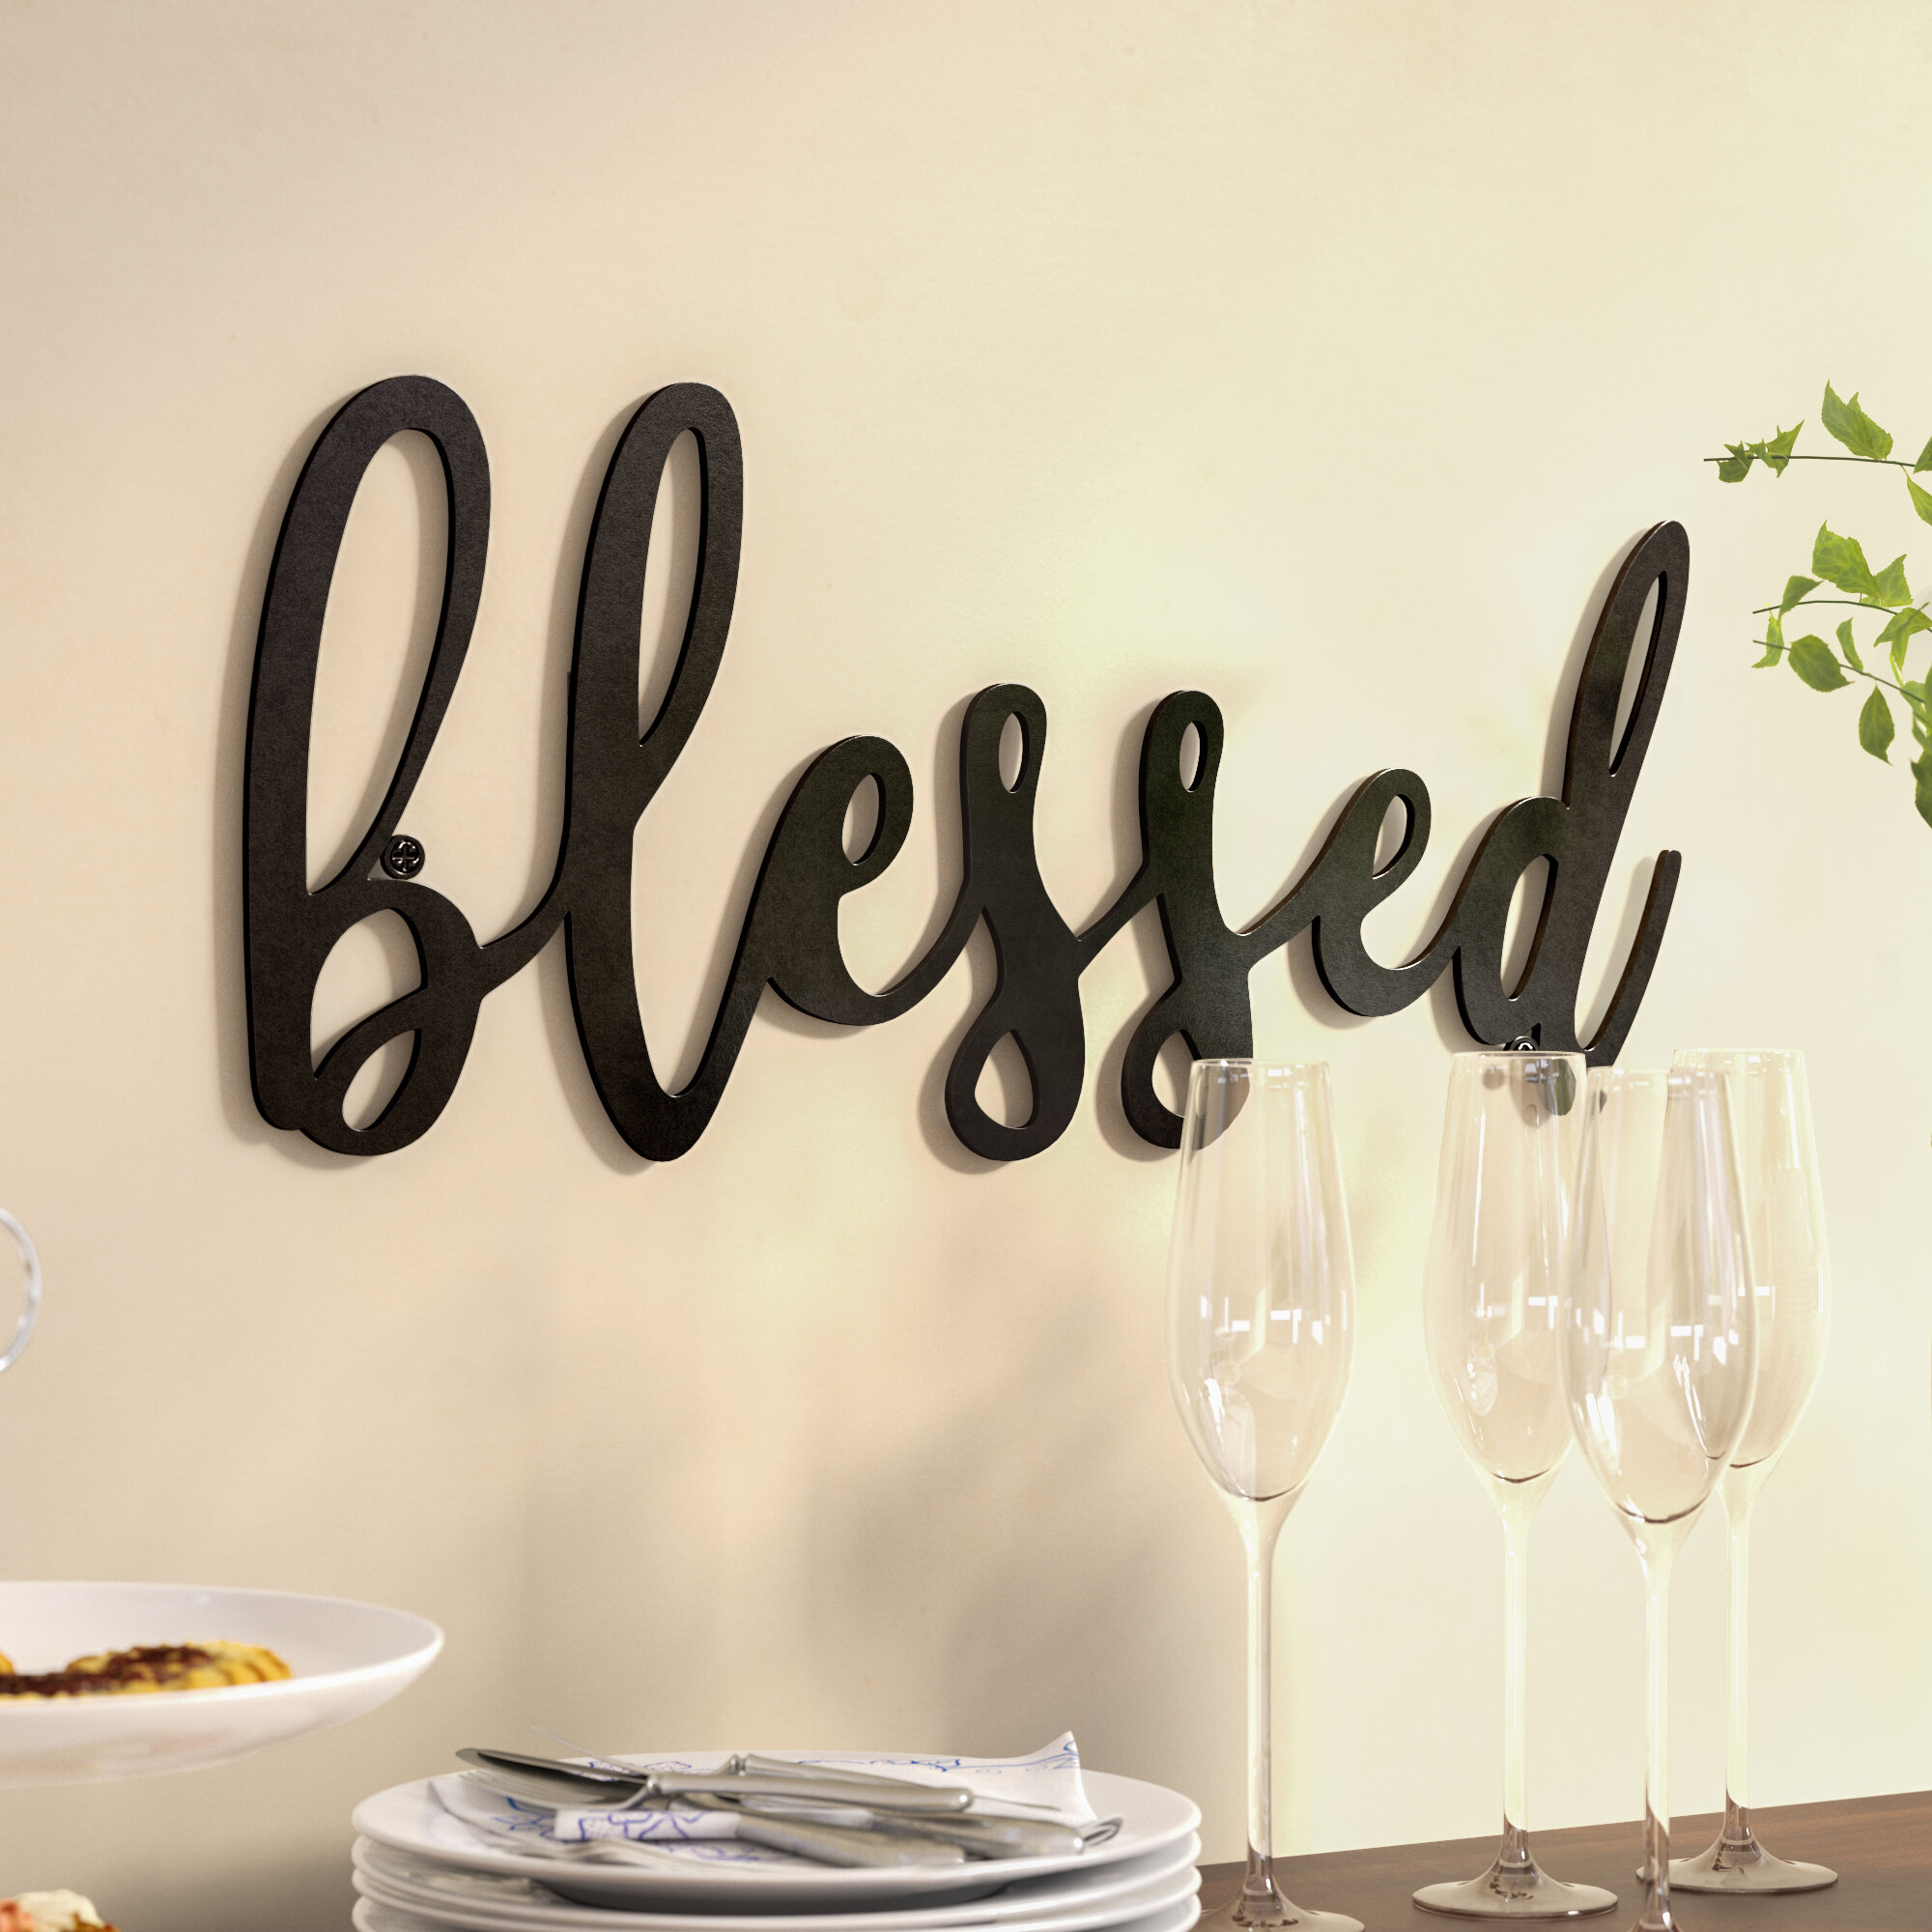 Blessed Metal Wall Décor pertaining to Metal Laundry Room Wall Decor by Winston Porter (Image 4 of 30)